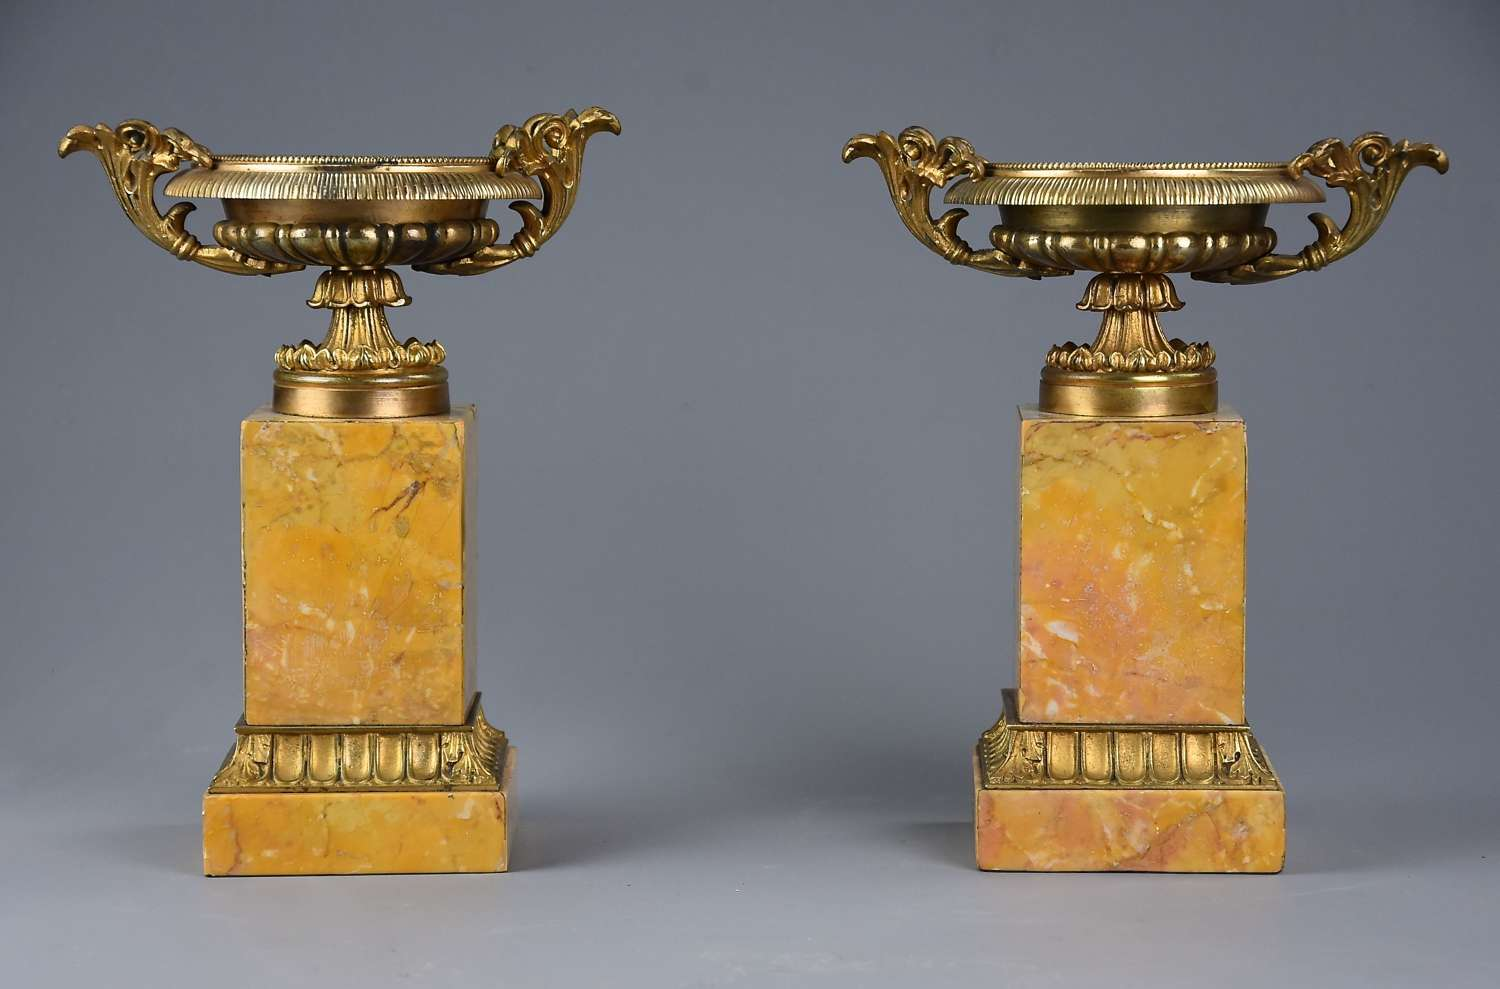 A pair of gilt metal tazzas on marble bases in the Neoclassical style